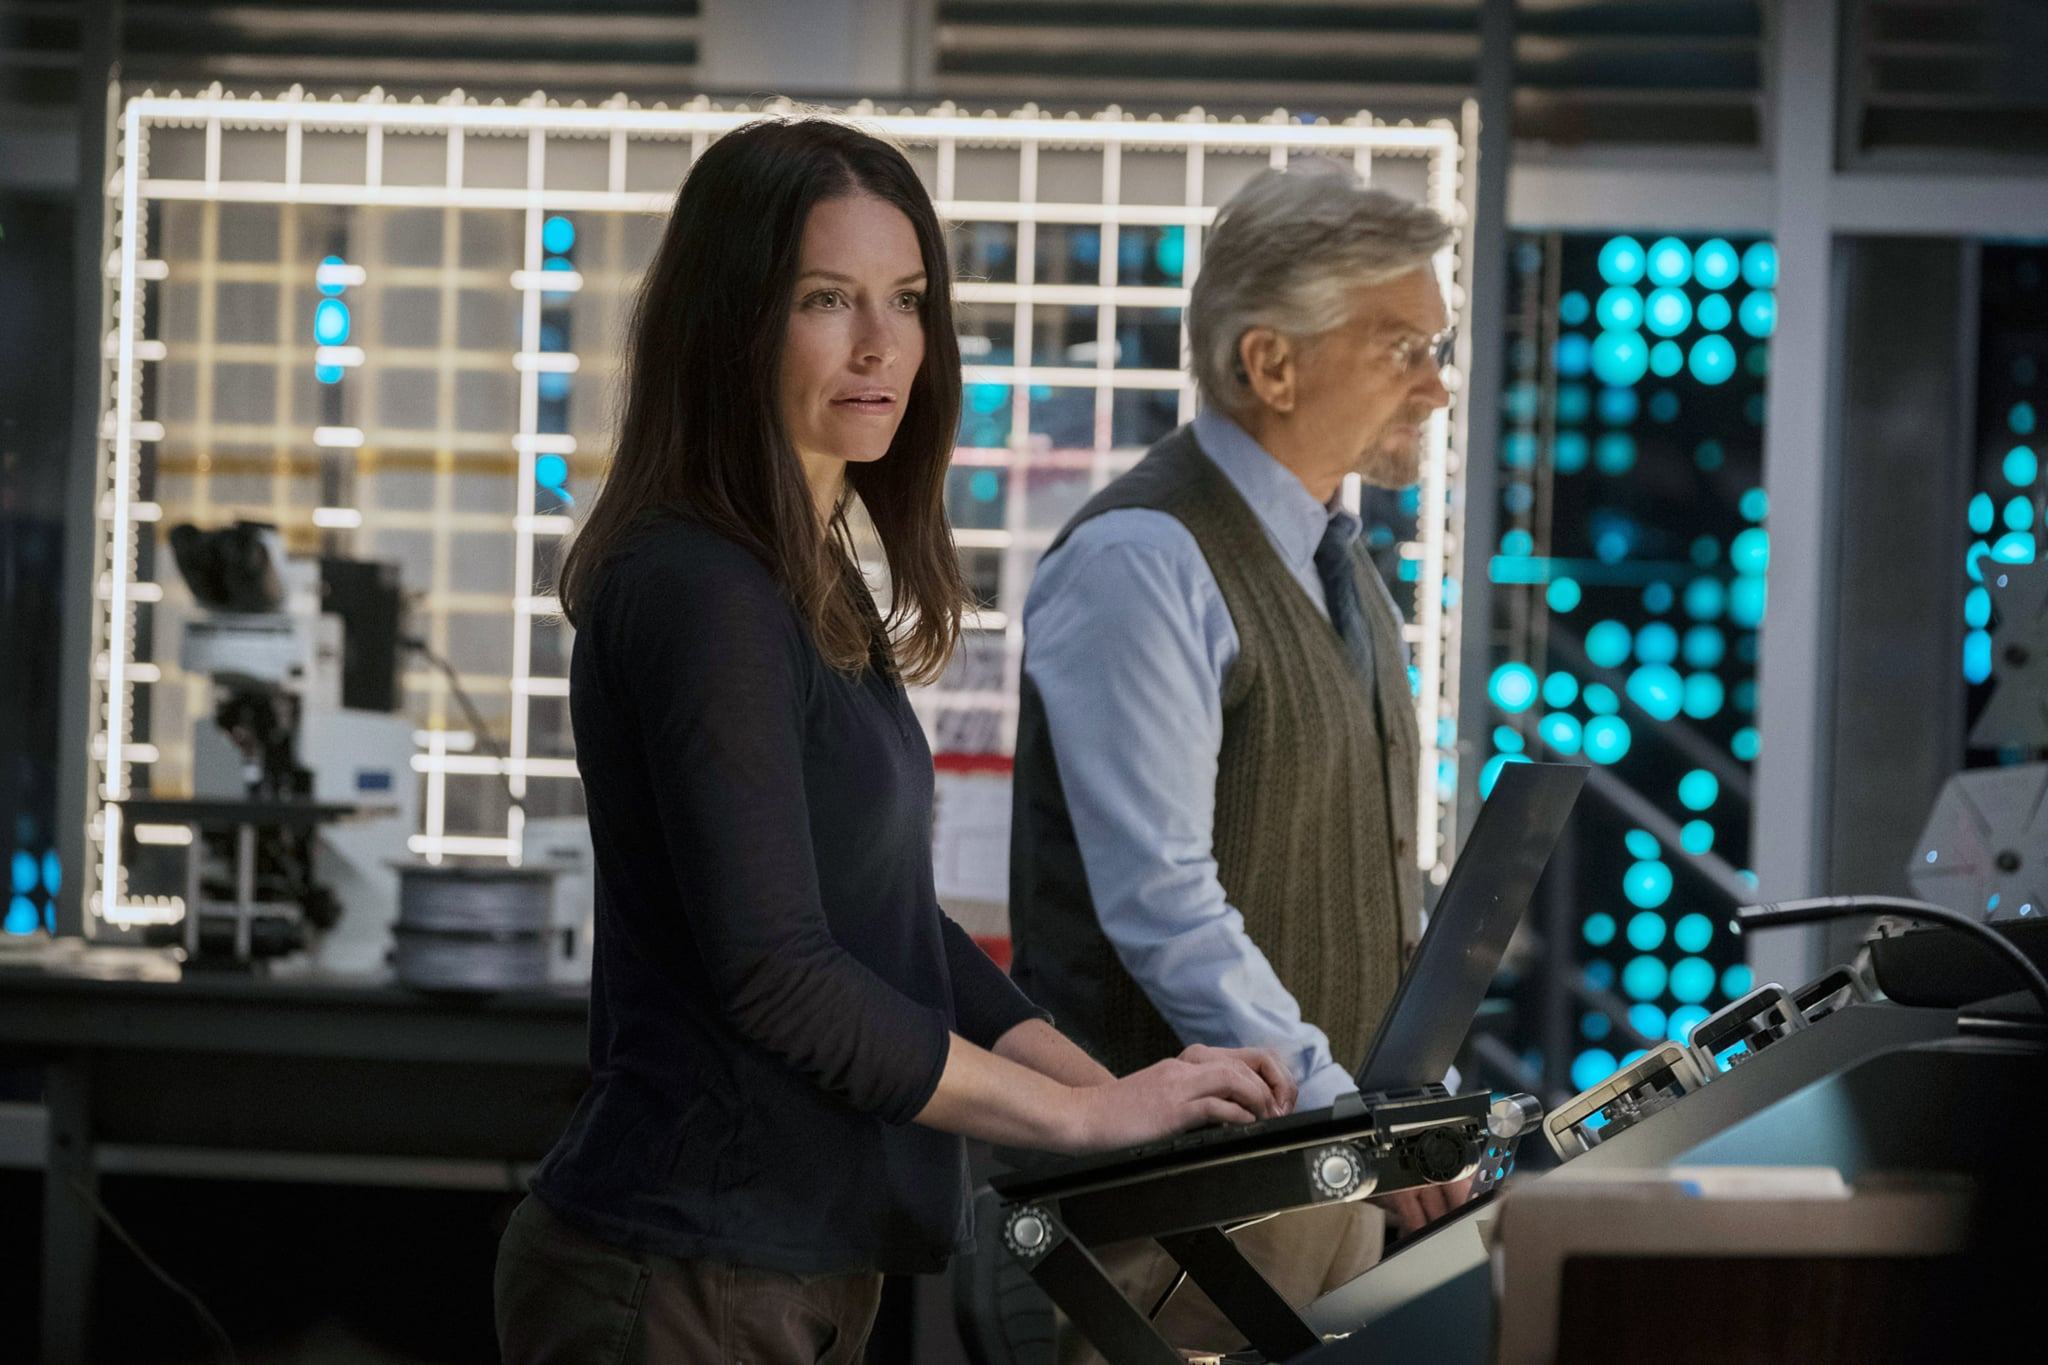 ANT-MAN AND THE WASP, from left: Evangeline Lilly, Michael Douglas, 2018. ph: Ben Rothstein / Marvel / Walt Disney Studios Motion Pictures /Courtesy Everett Collection